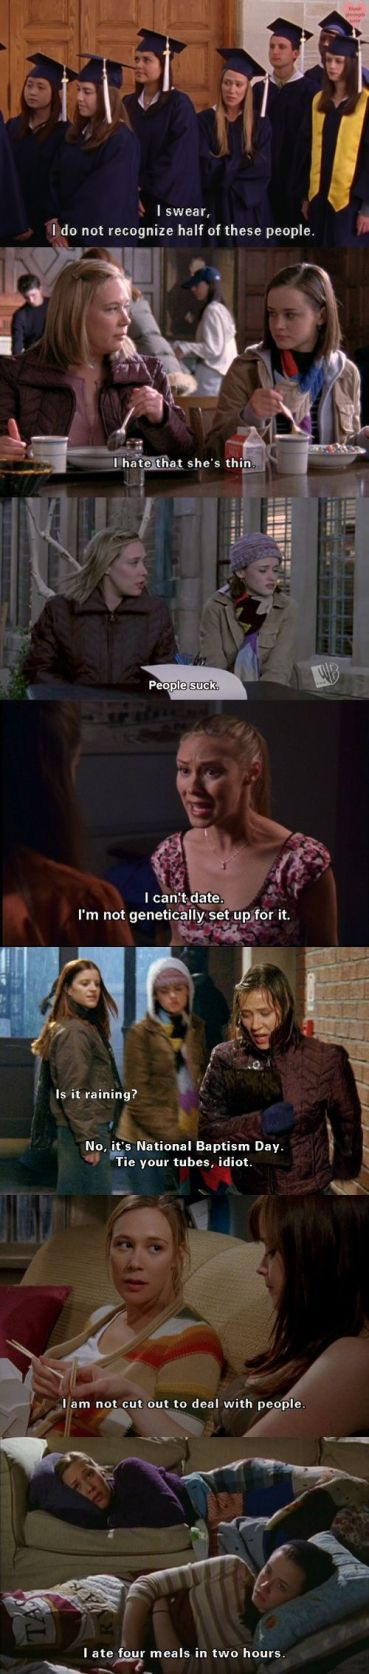 I love the Gilmore Girls Quotes!